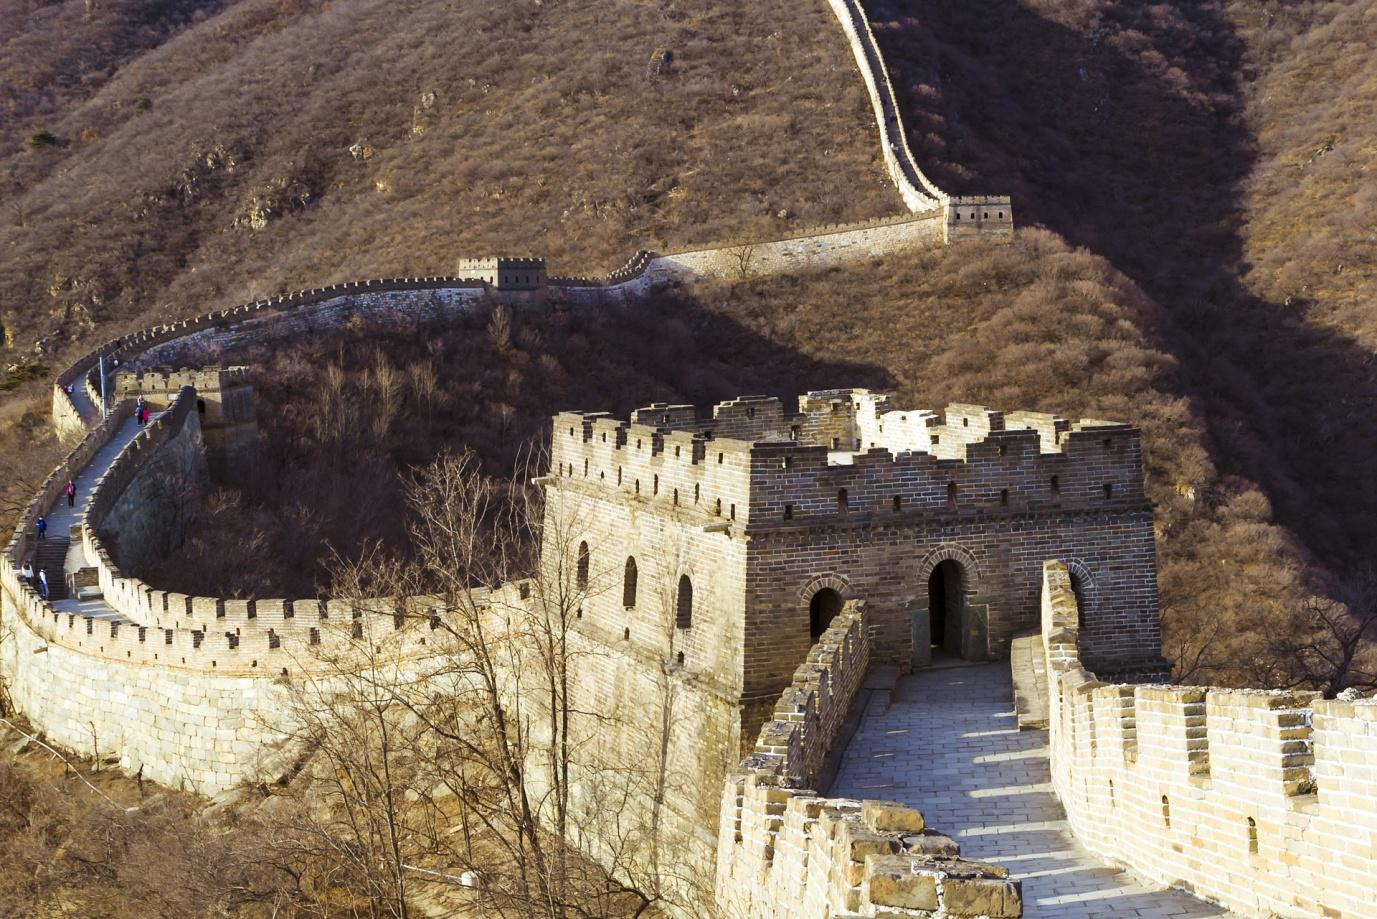 Trip to The Great Wall of China, Do's and Don'ts when visiting